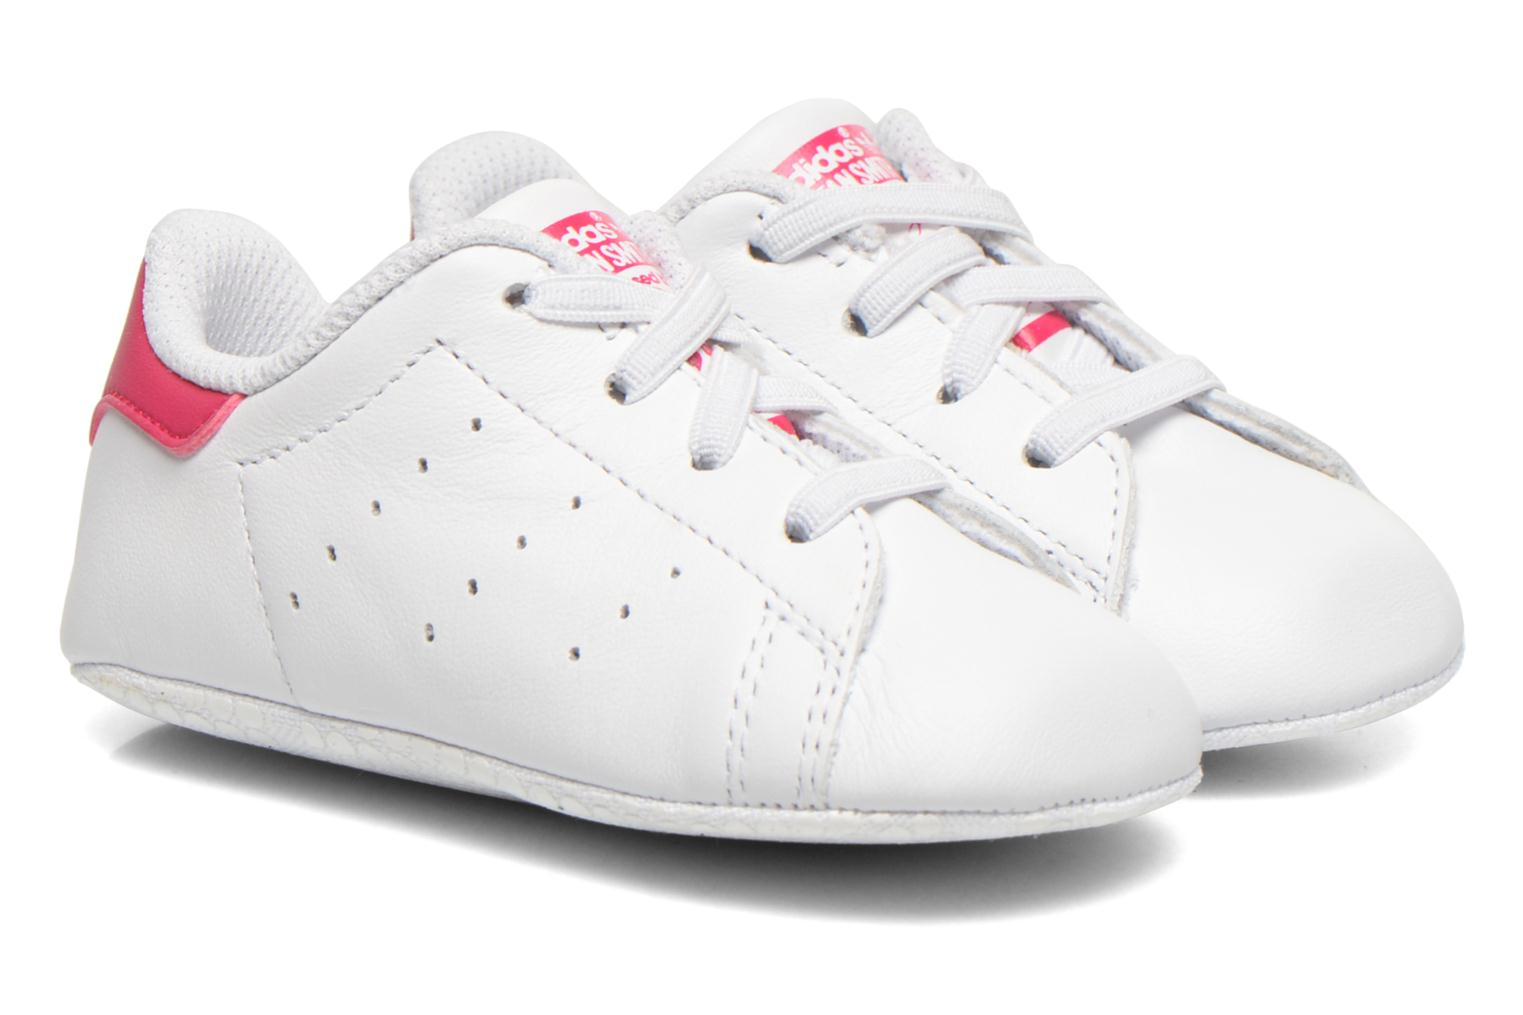 Stan Smith Crib Ftwbla/Ftwbla/Rosecl